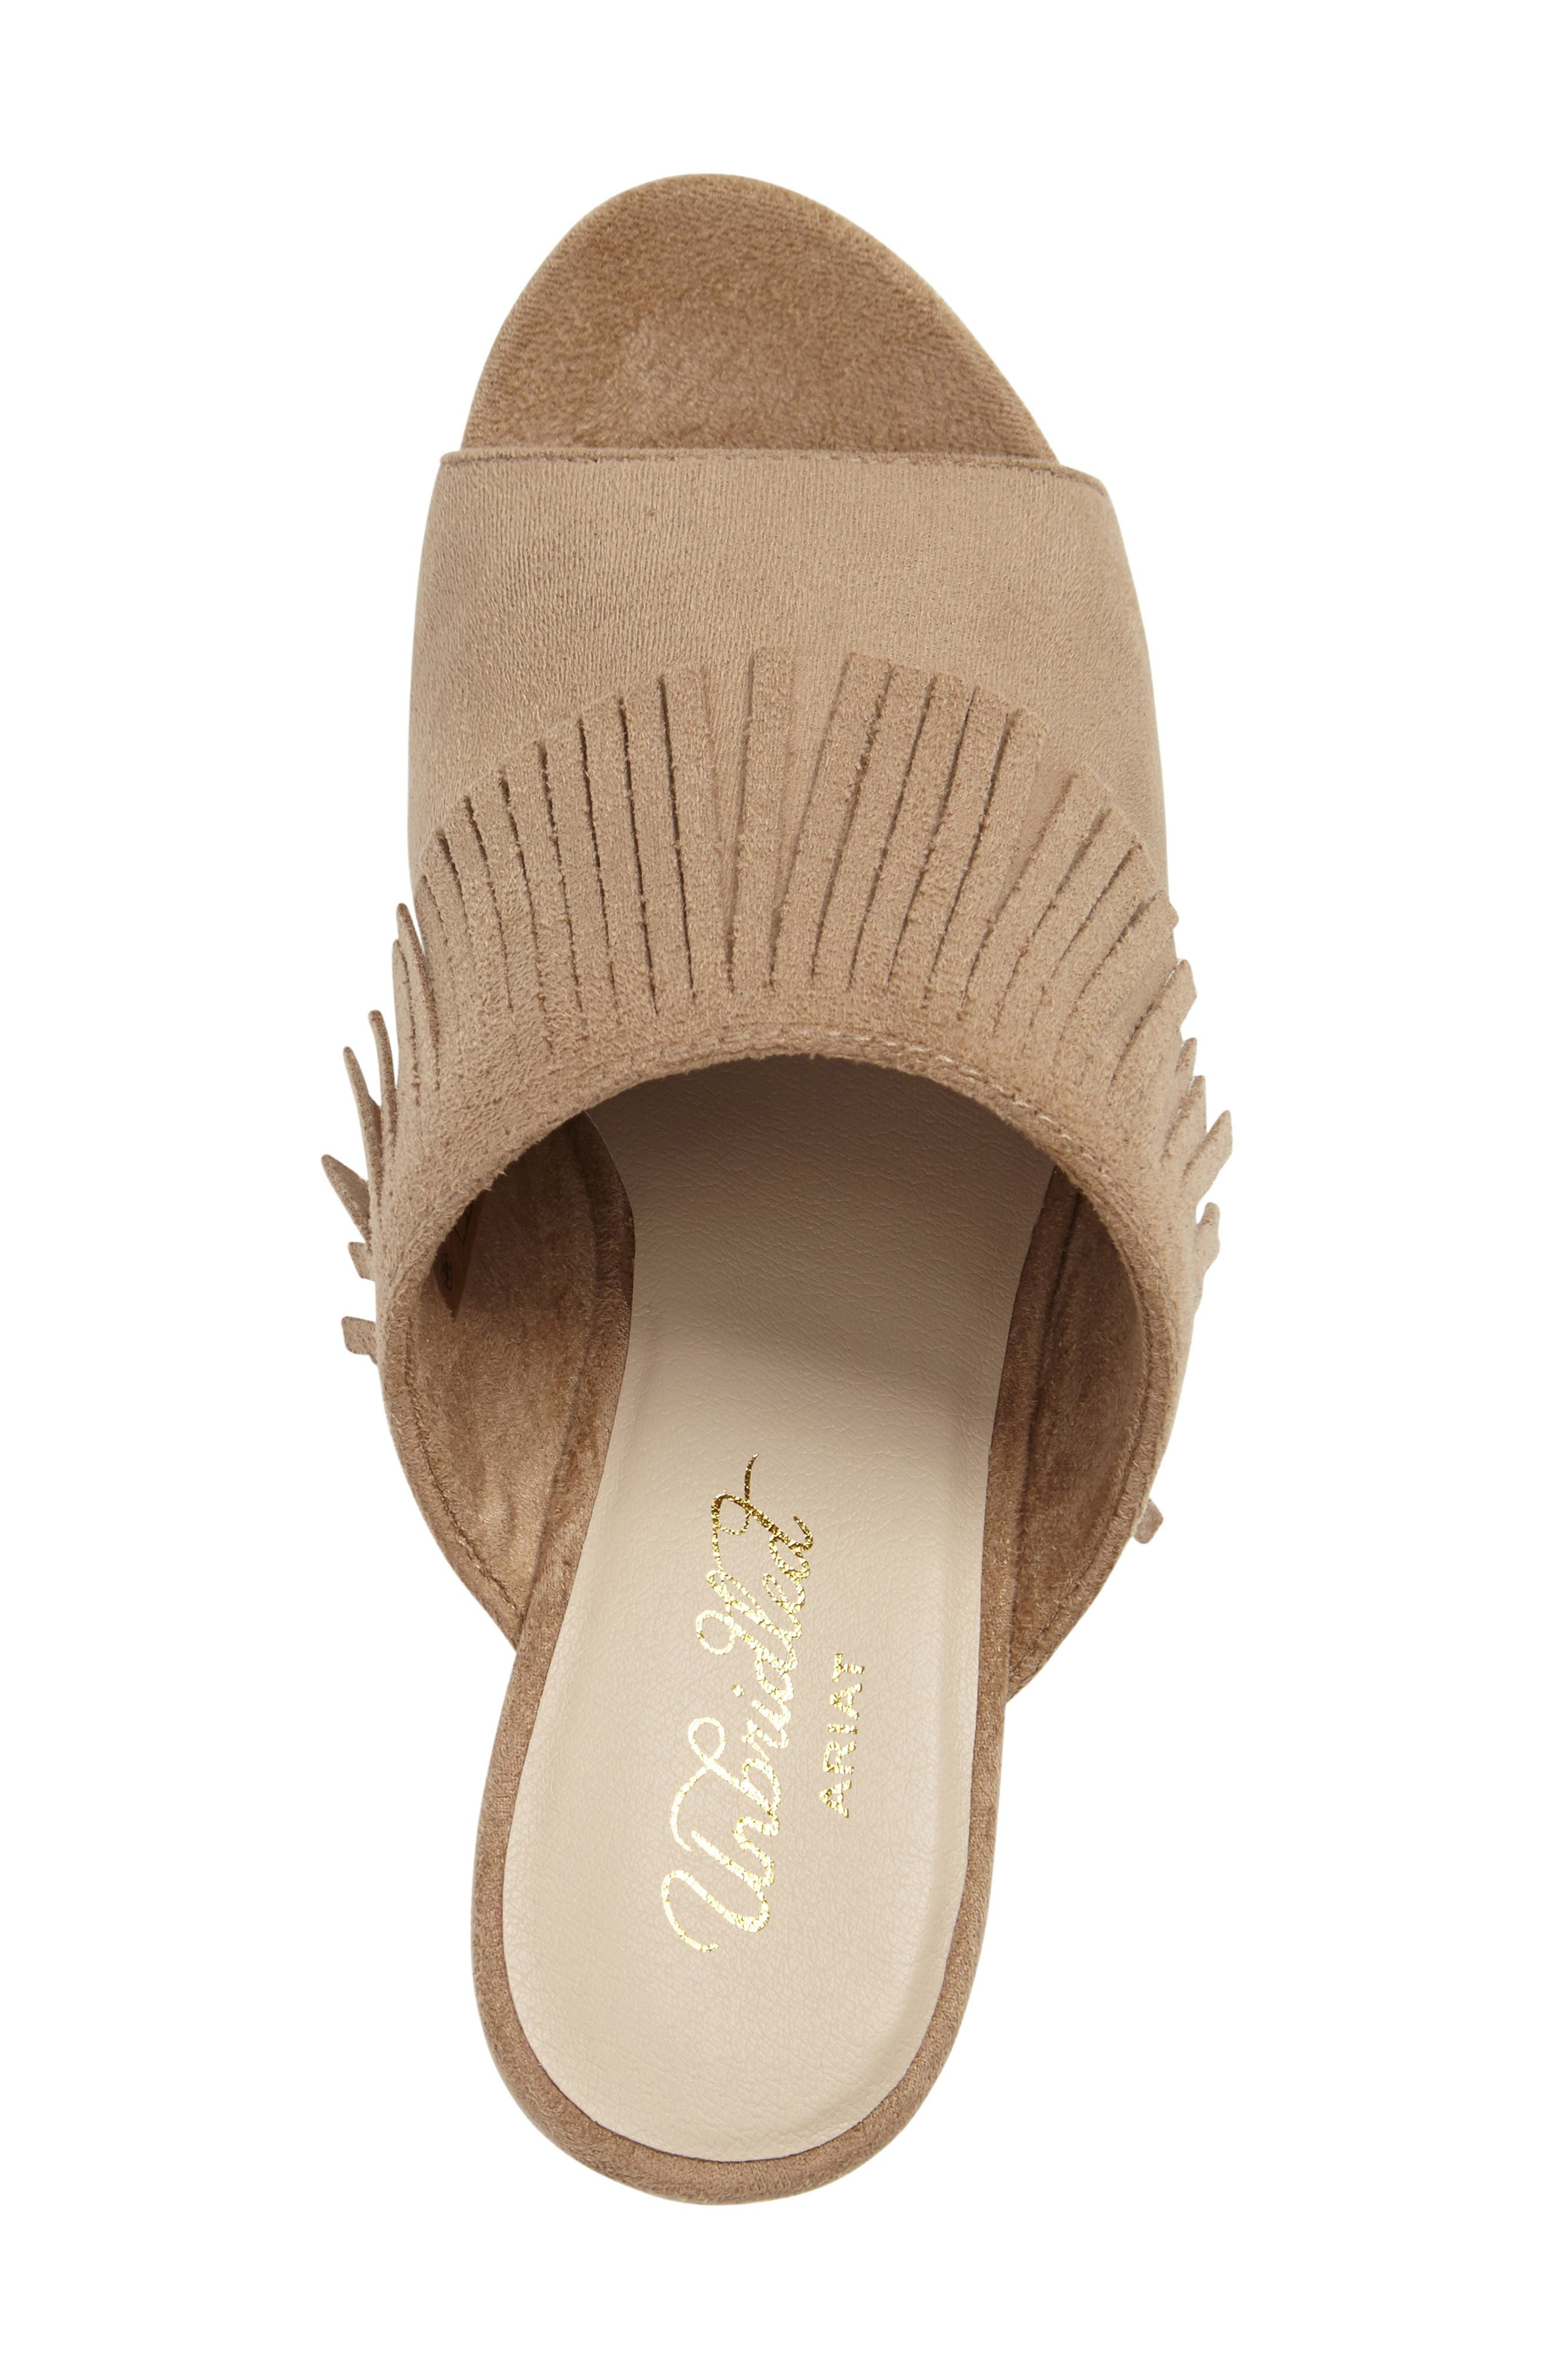 Unbridled Leigh Fringe Mule,                             Alternate thumbnail 3, color,                             Sand Fabric